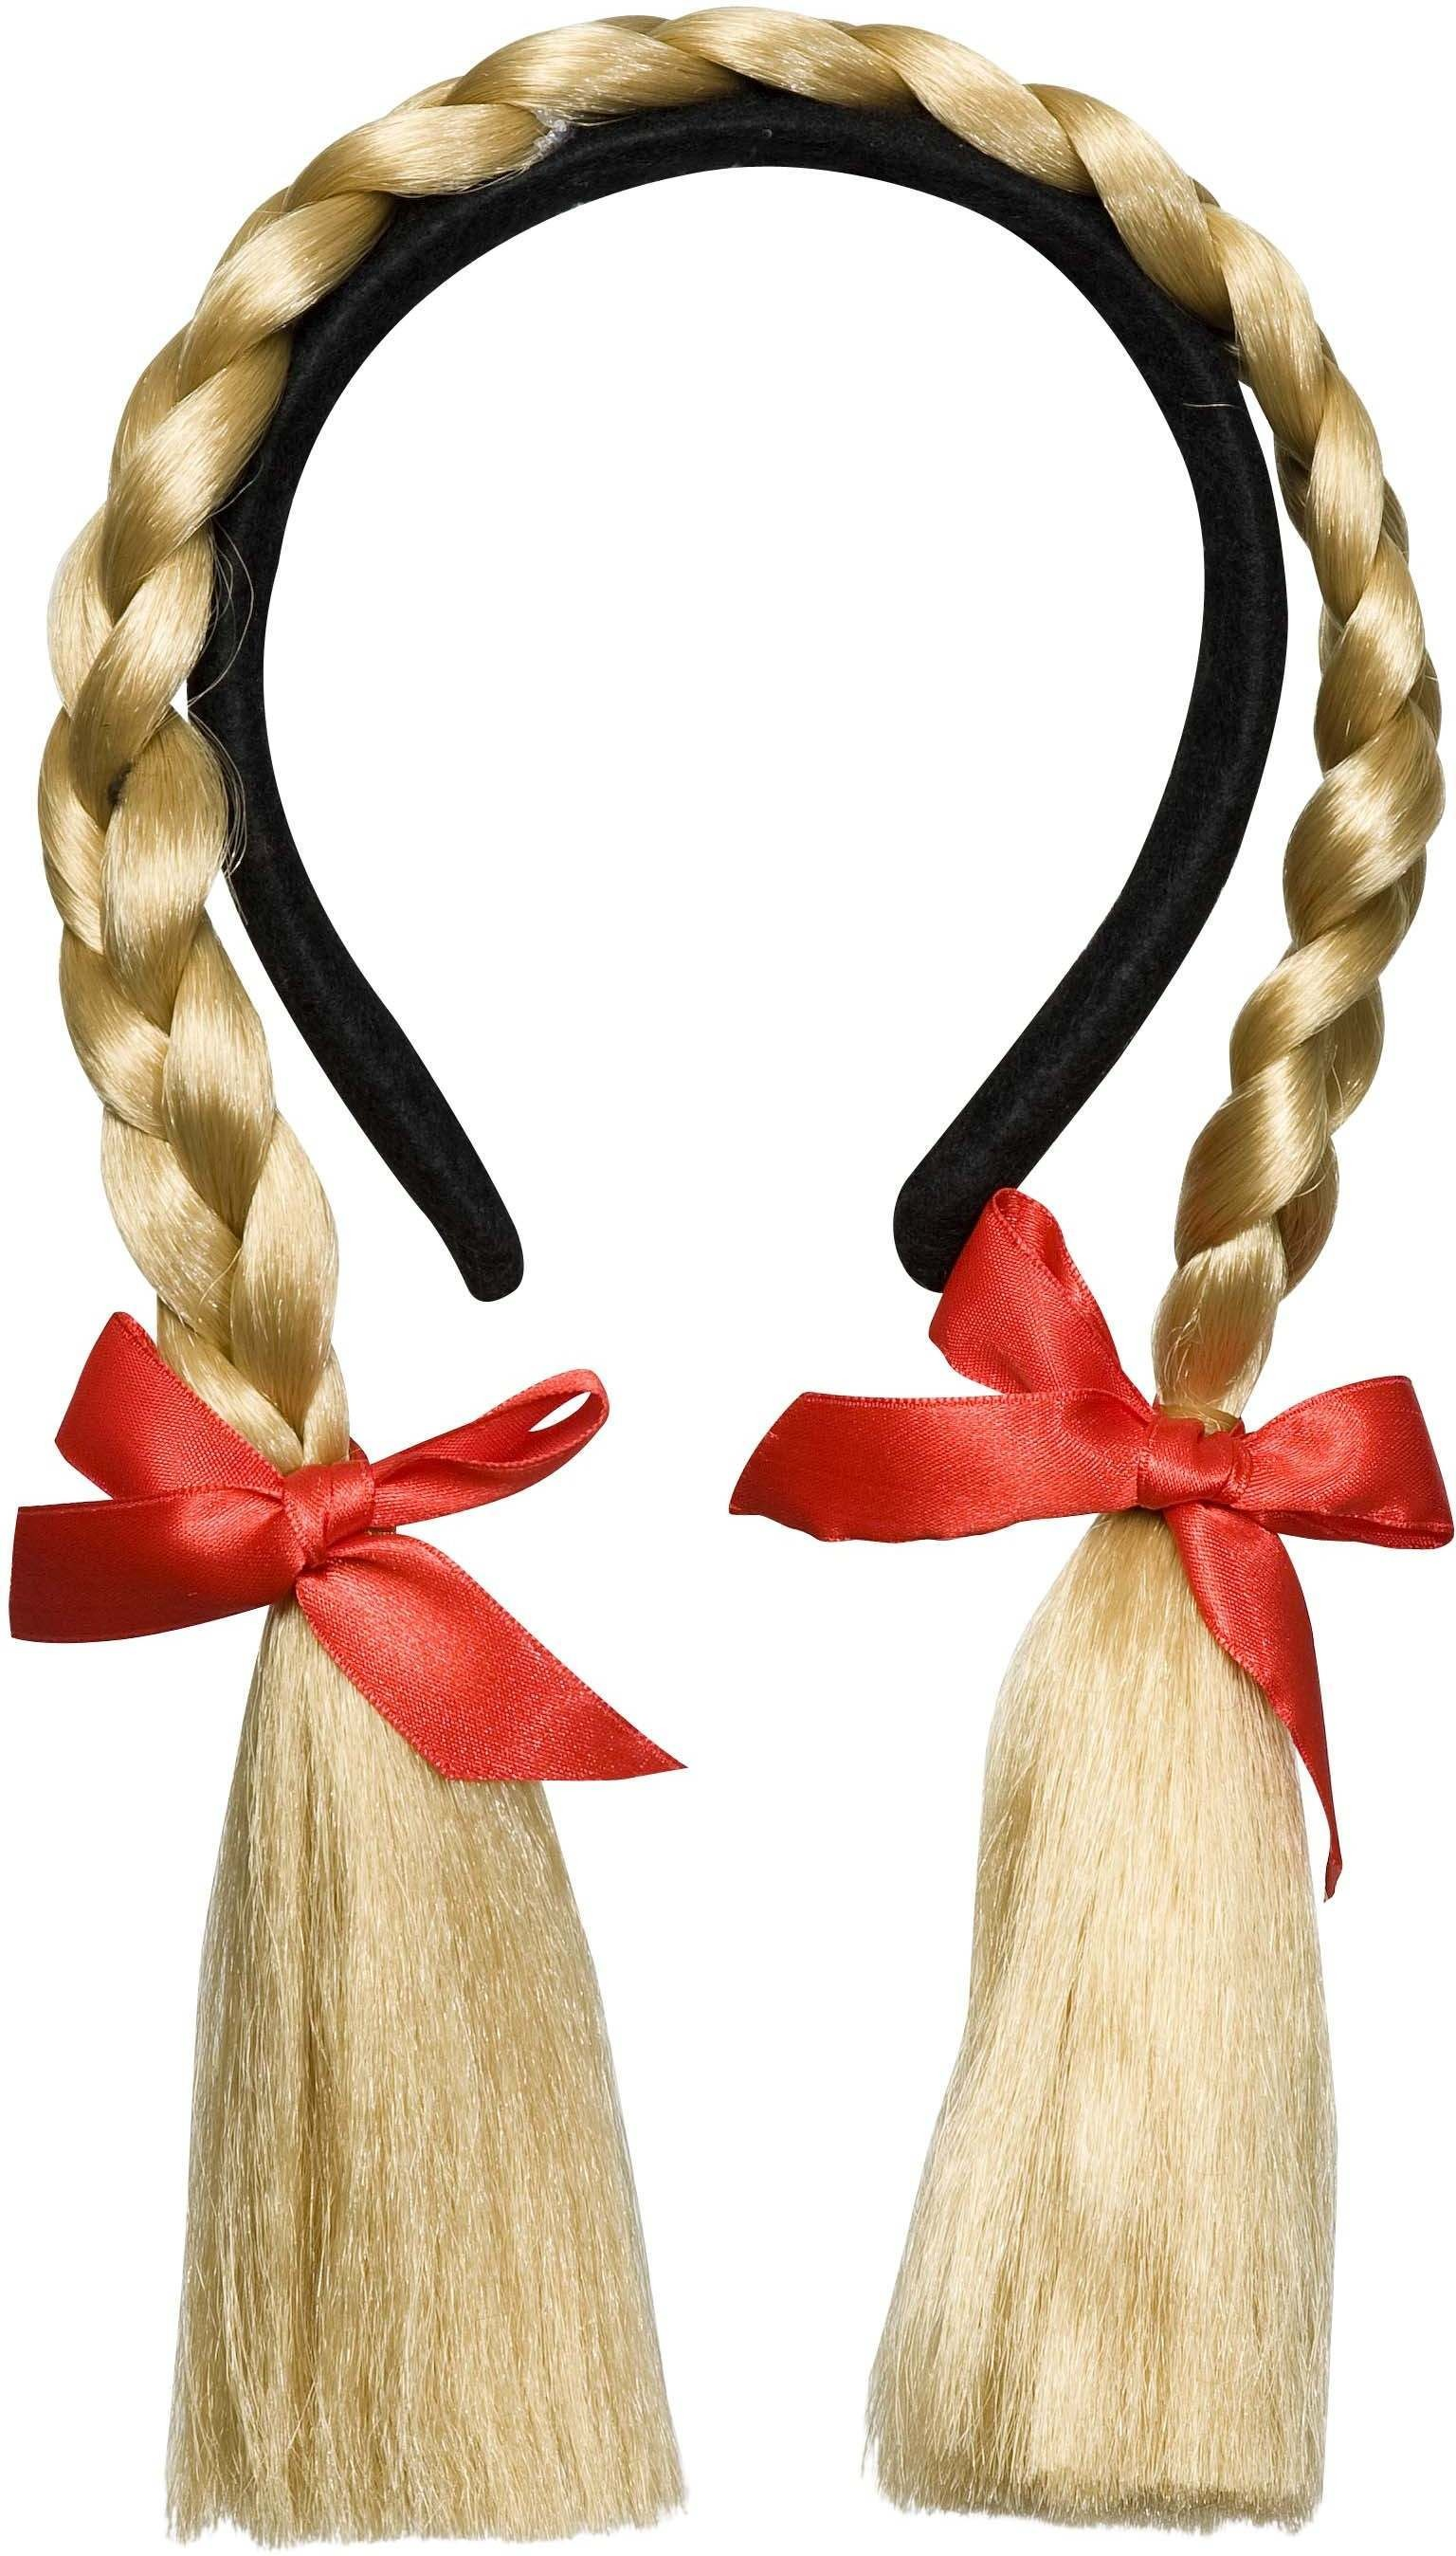 Bendable Plaits Headband - Blonde - Fancy Dress